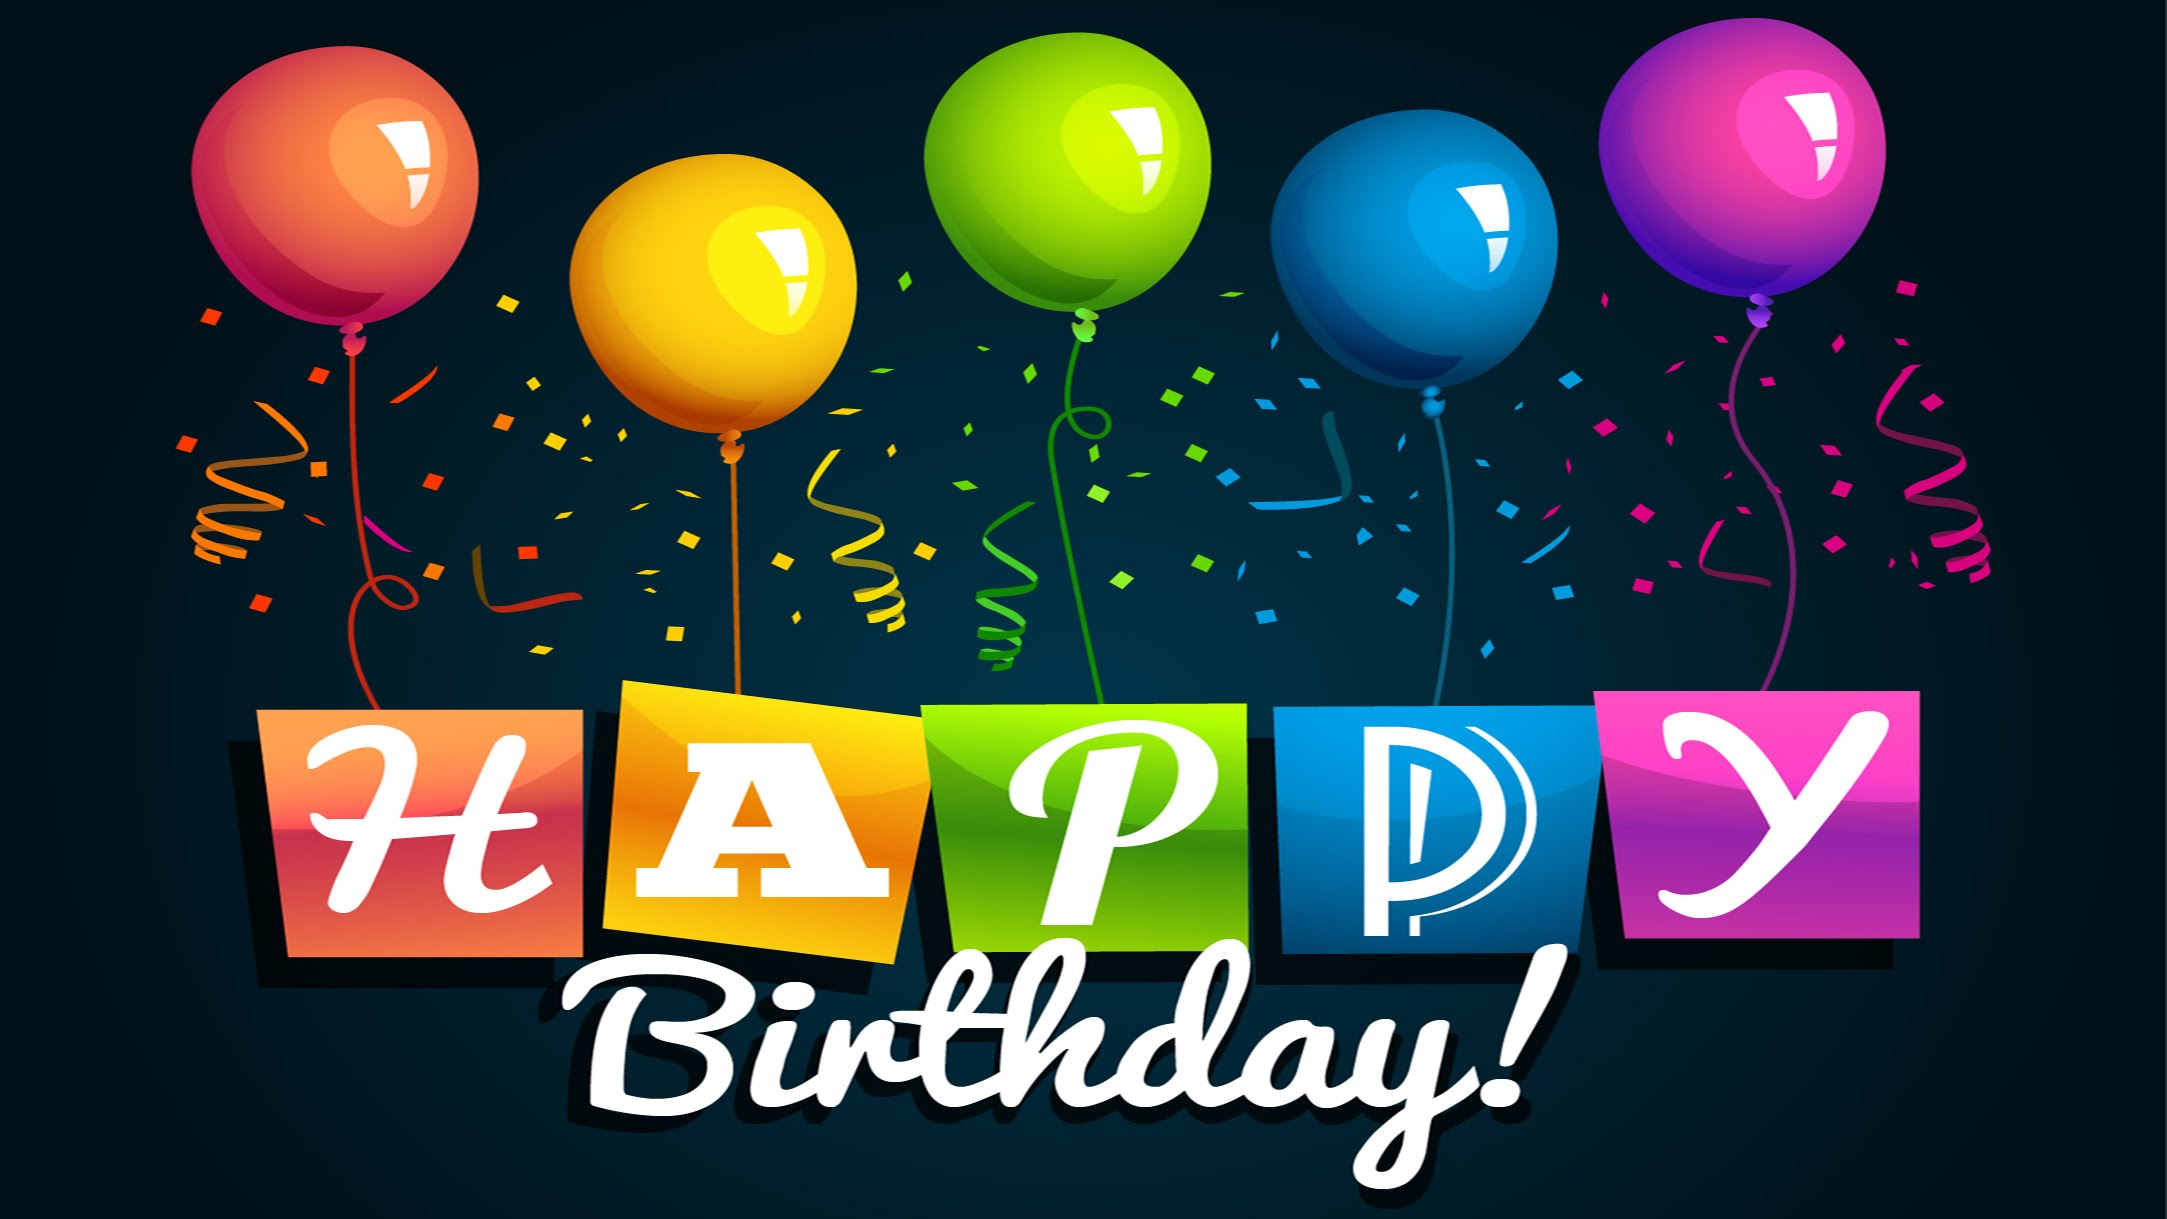 Happy Birthday Images, Wallpapers & Photos for Whatsapp ...